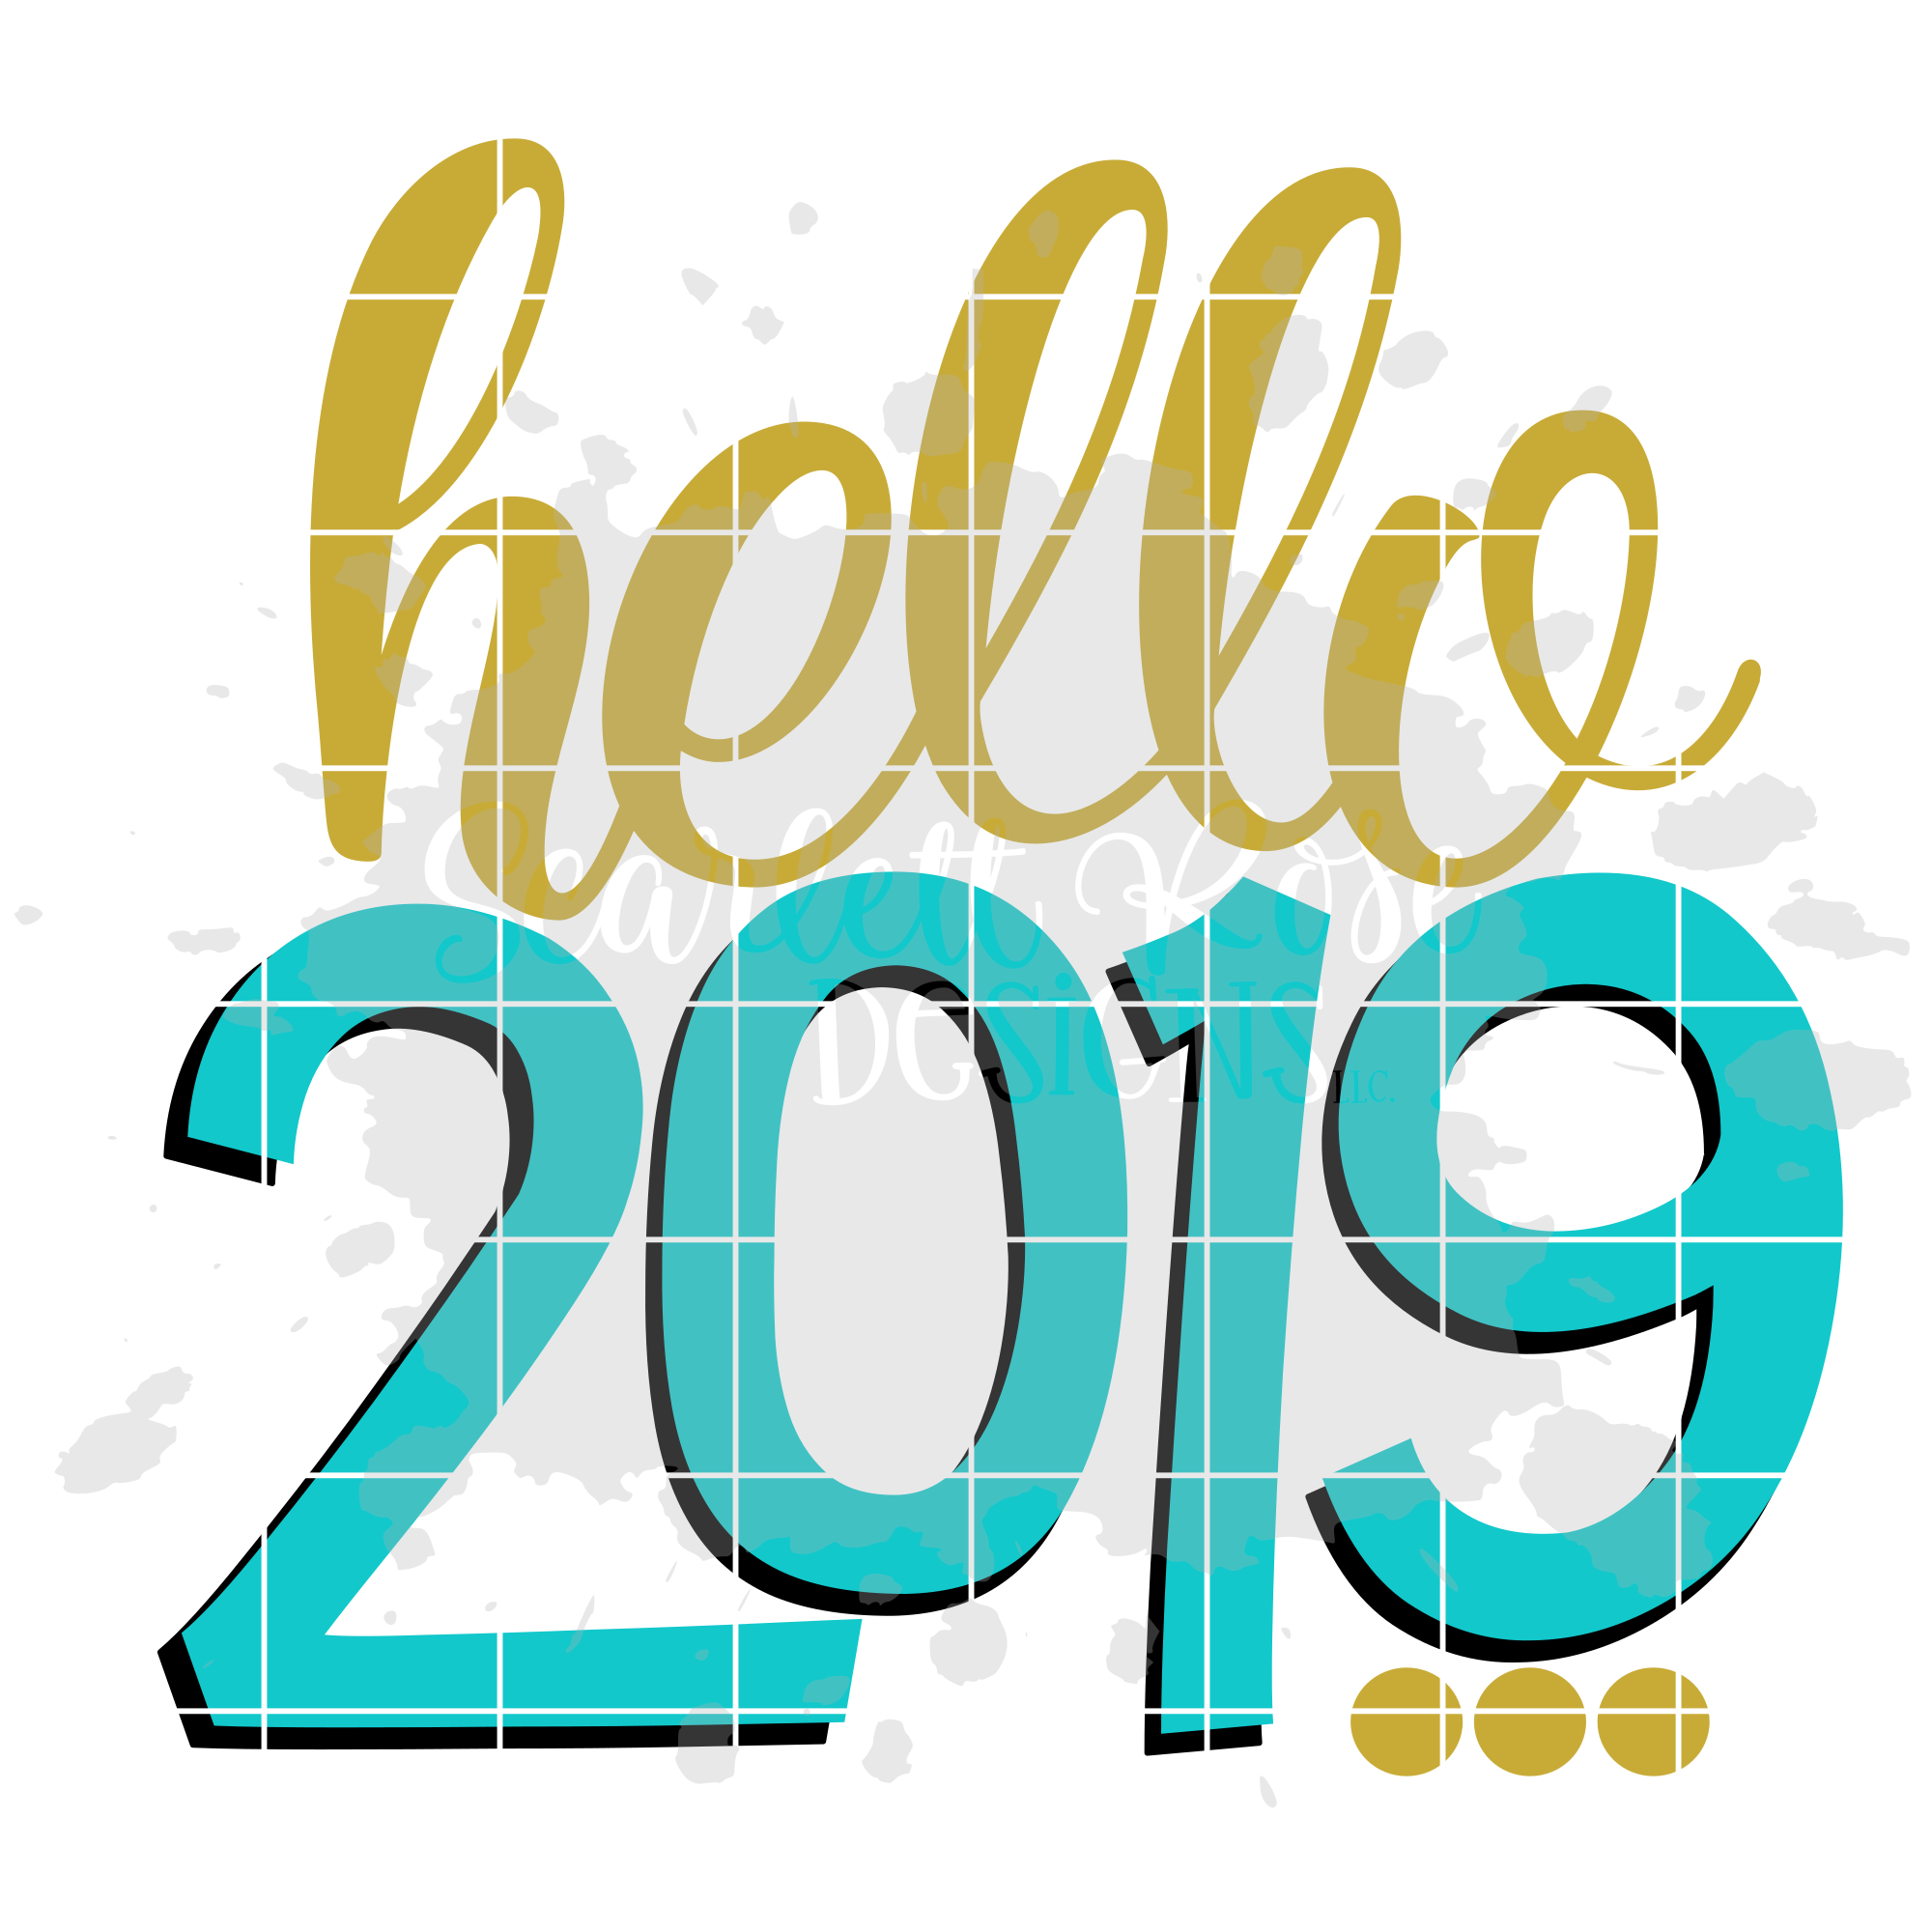 Hello 2019 - New Year's SVG example image 2